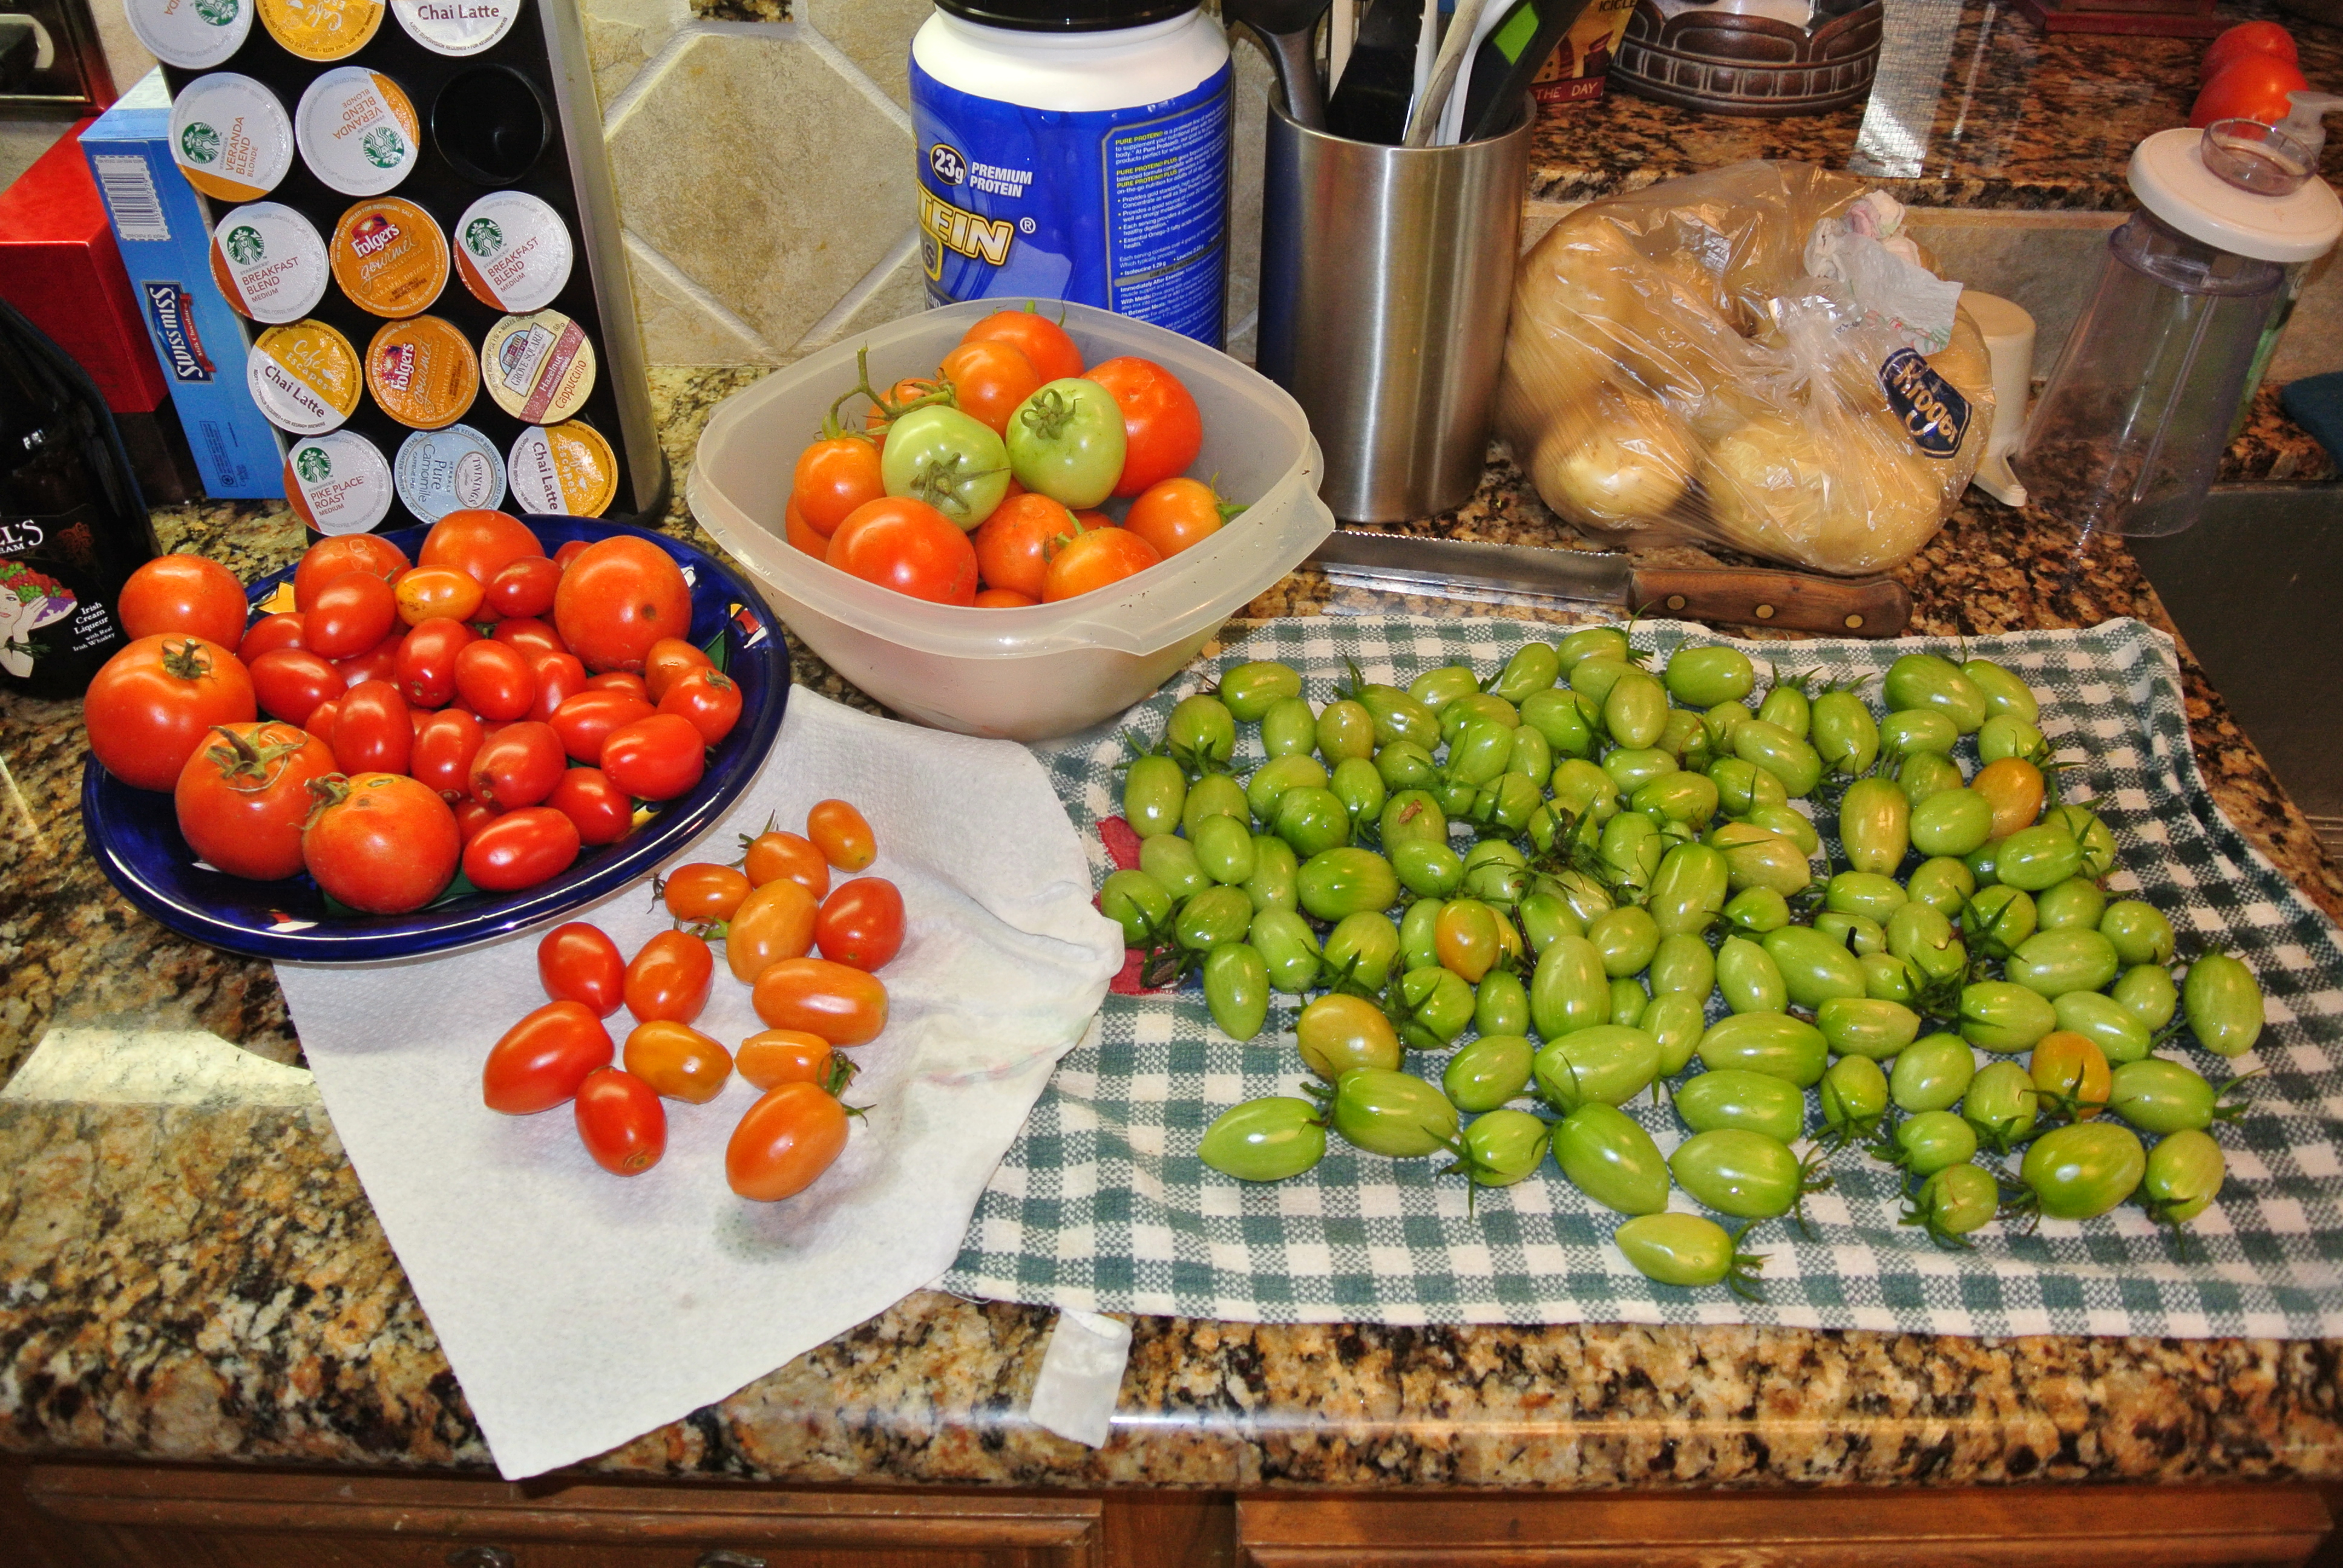 The tomatoes rescued and brought in on Christmas Day. Hope to ripen the green ones